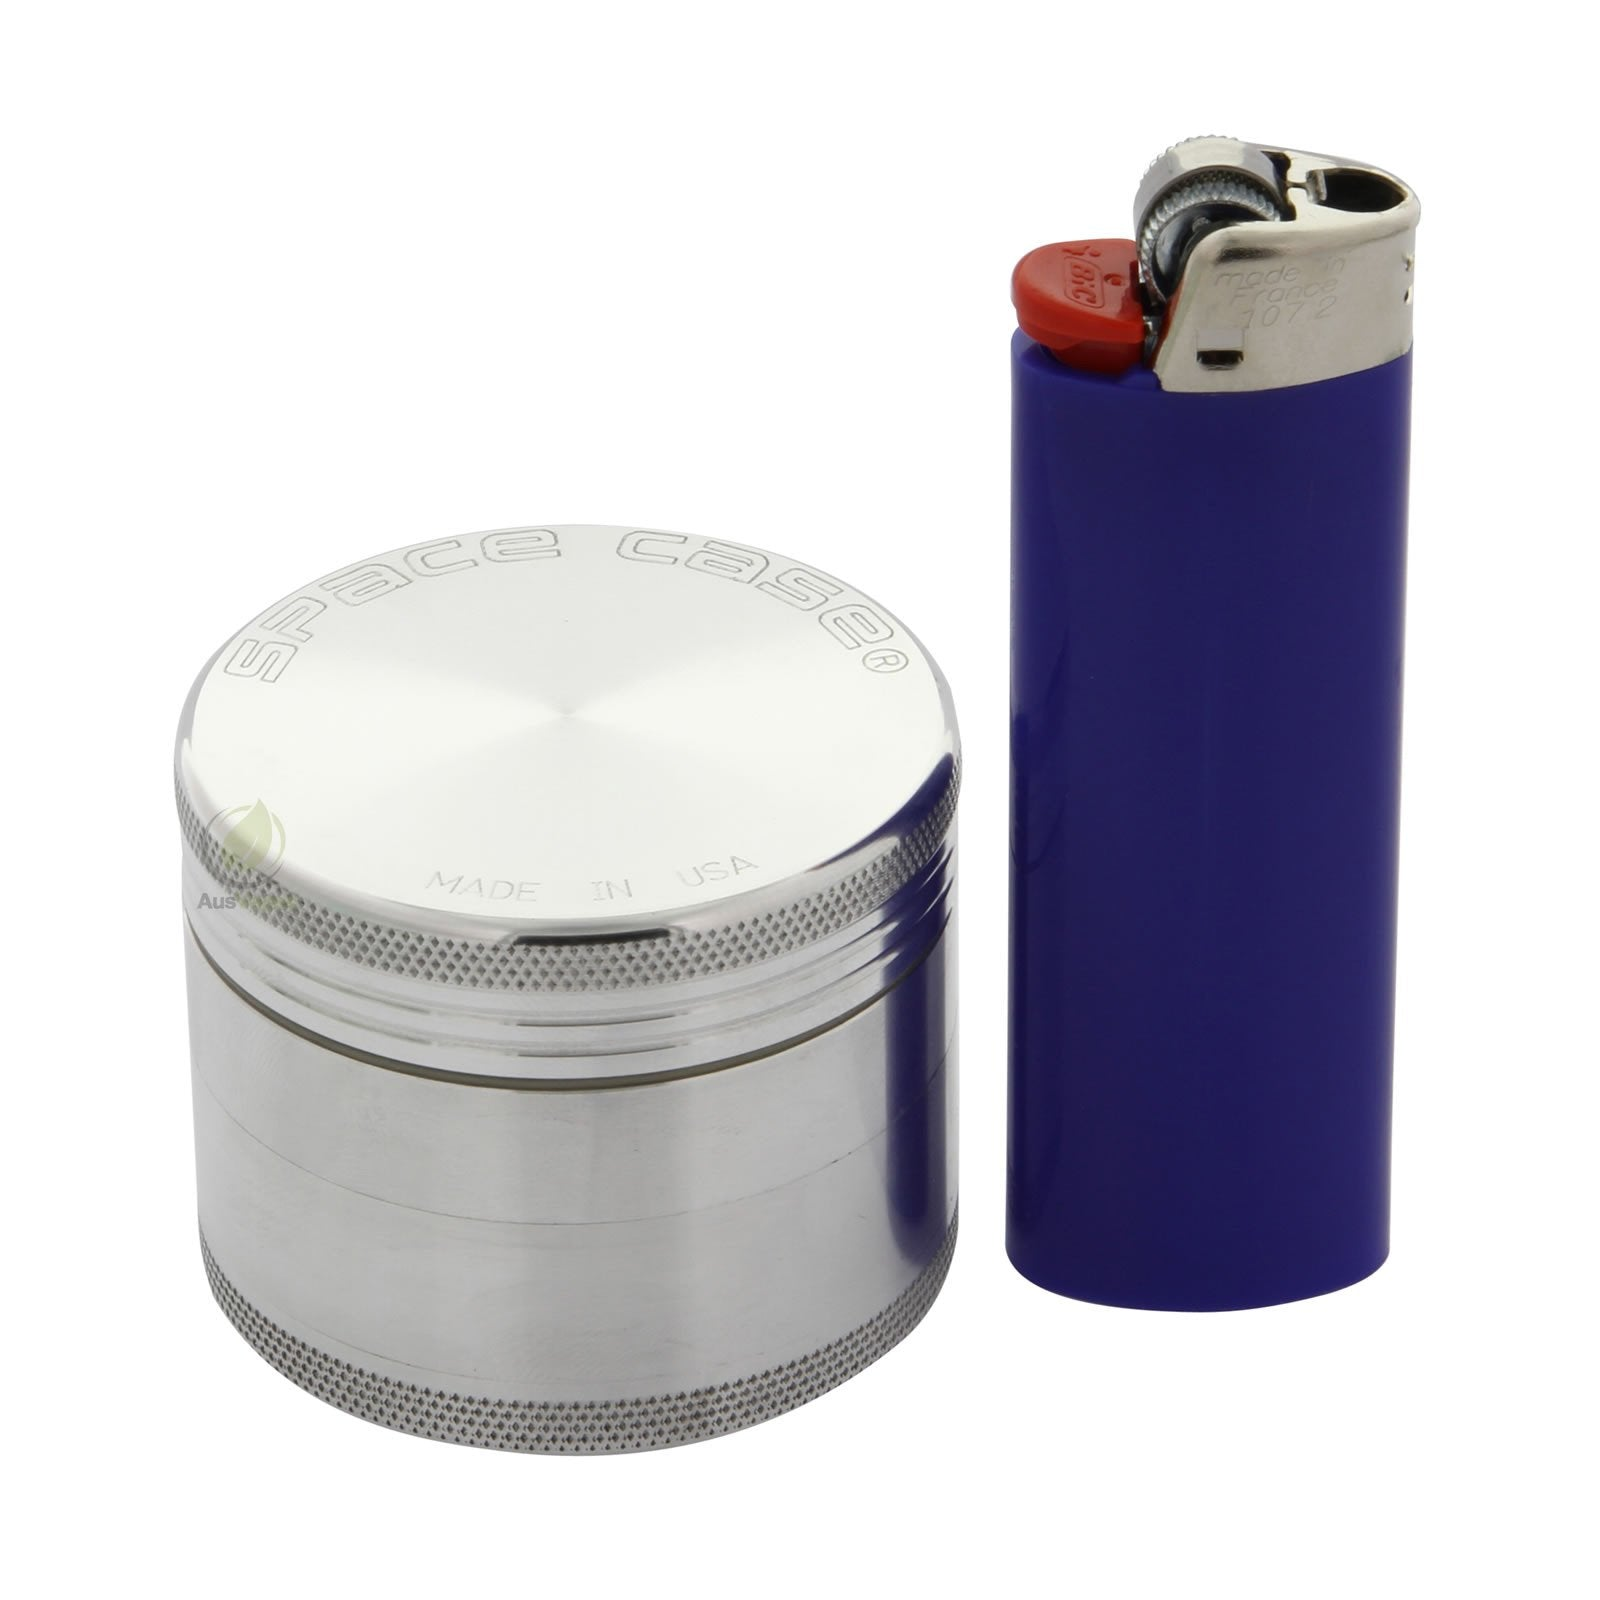 Space Case Small Grinder 50mm - 4 pc.